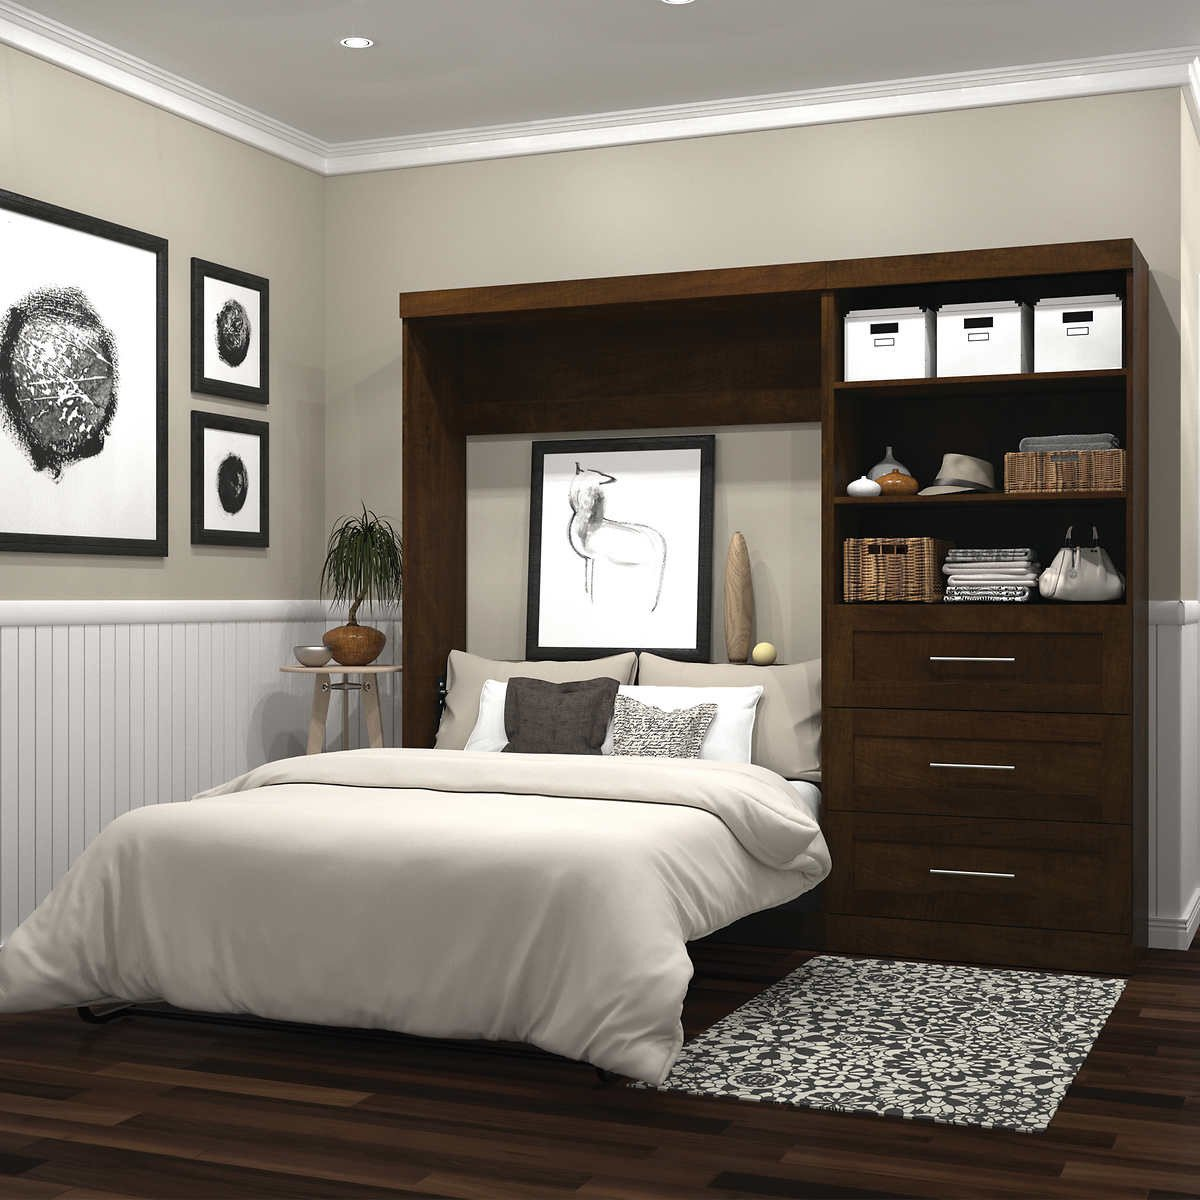 "Queen Size Bedroom Suit Unique Boutique Full Wall Bed with 36"" Storage Unit In Brown"